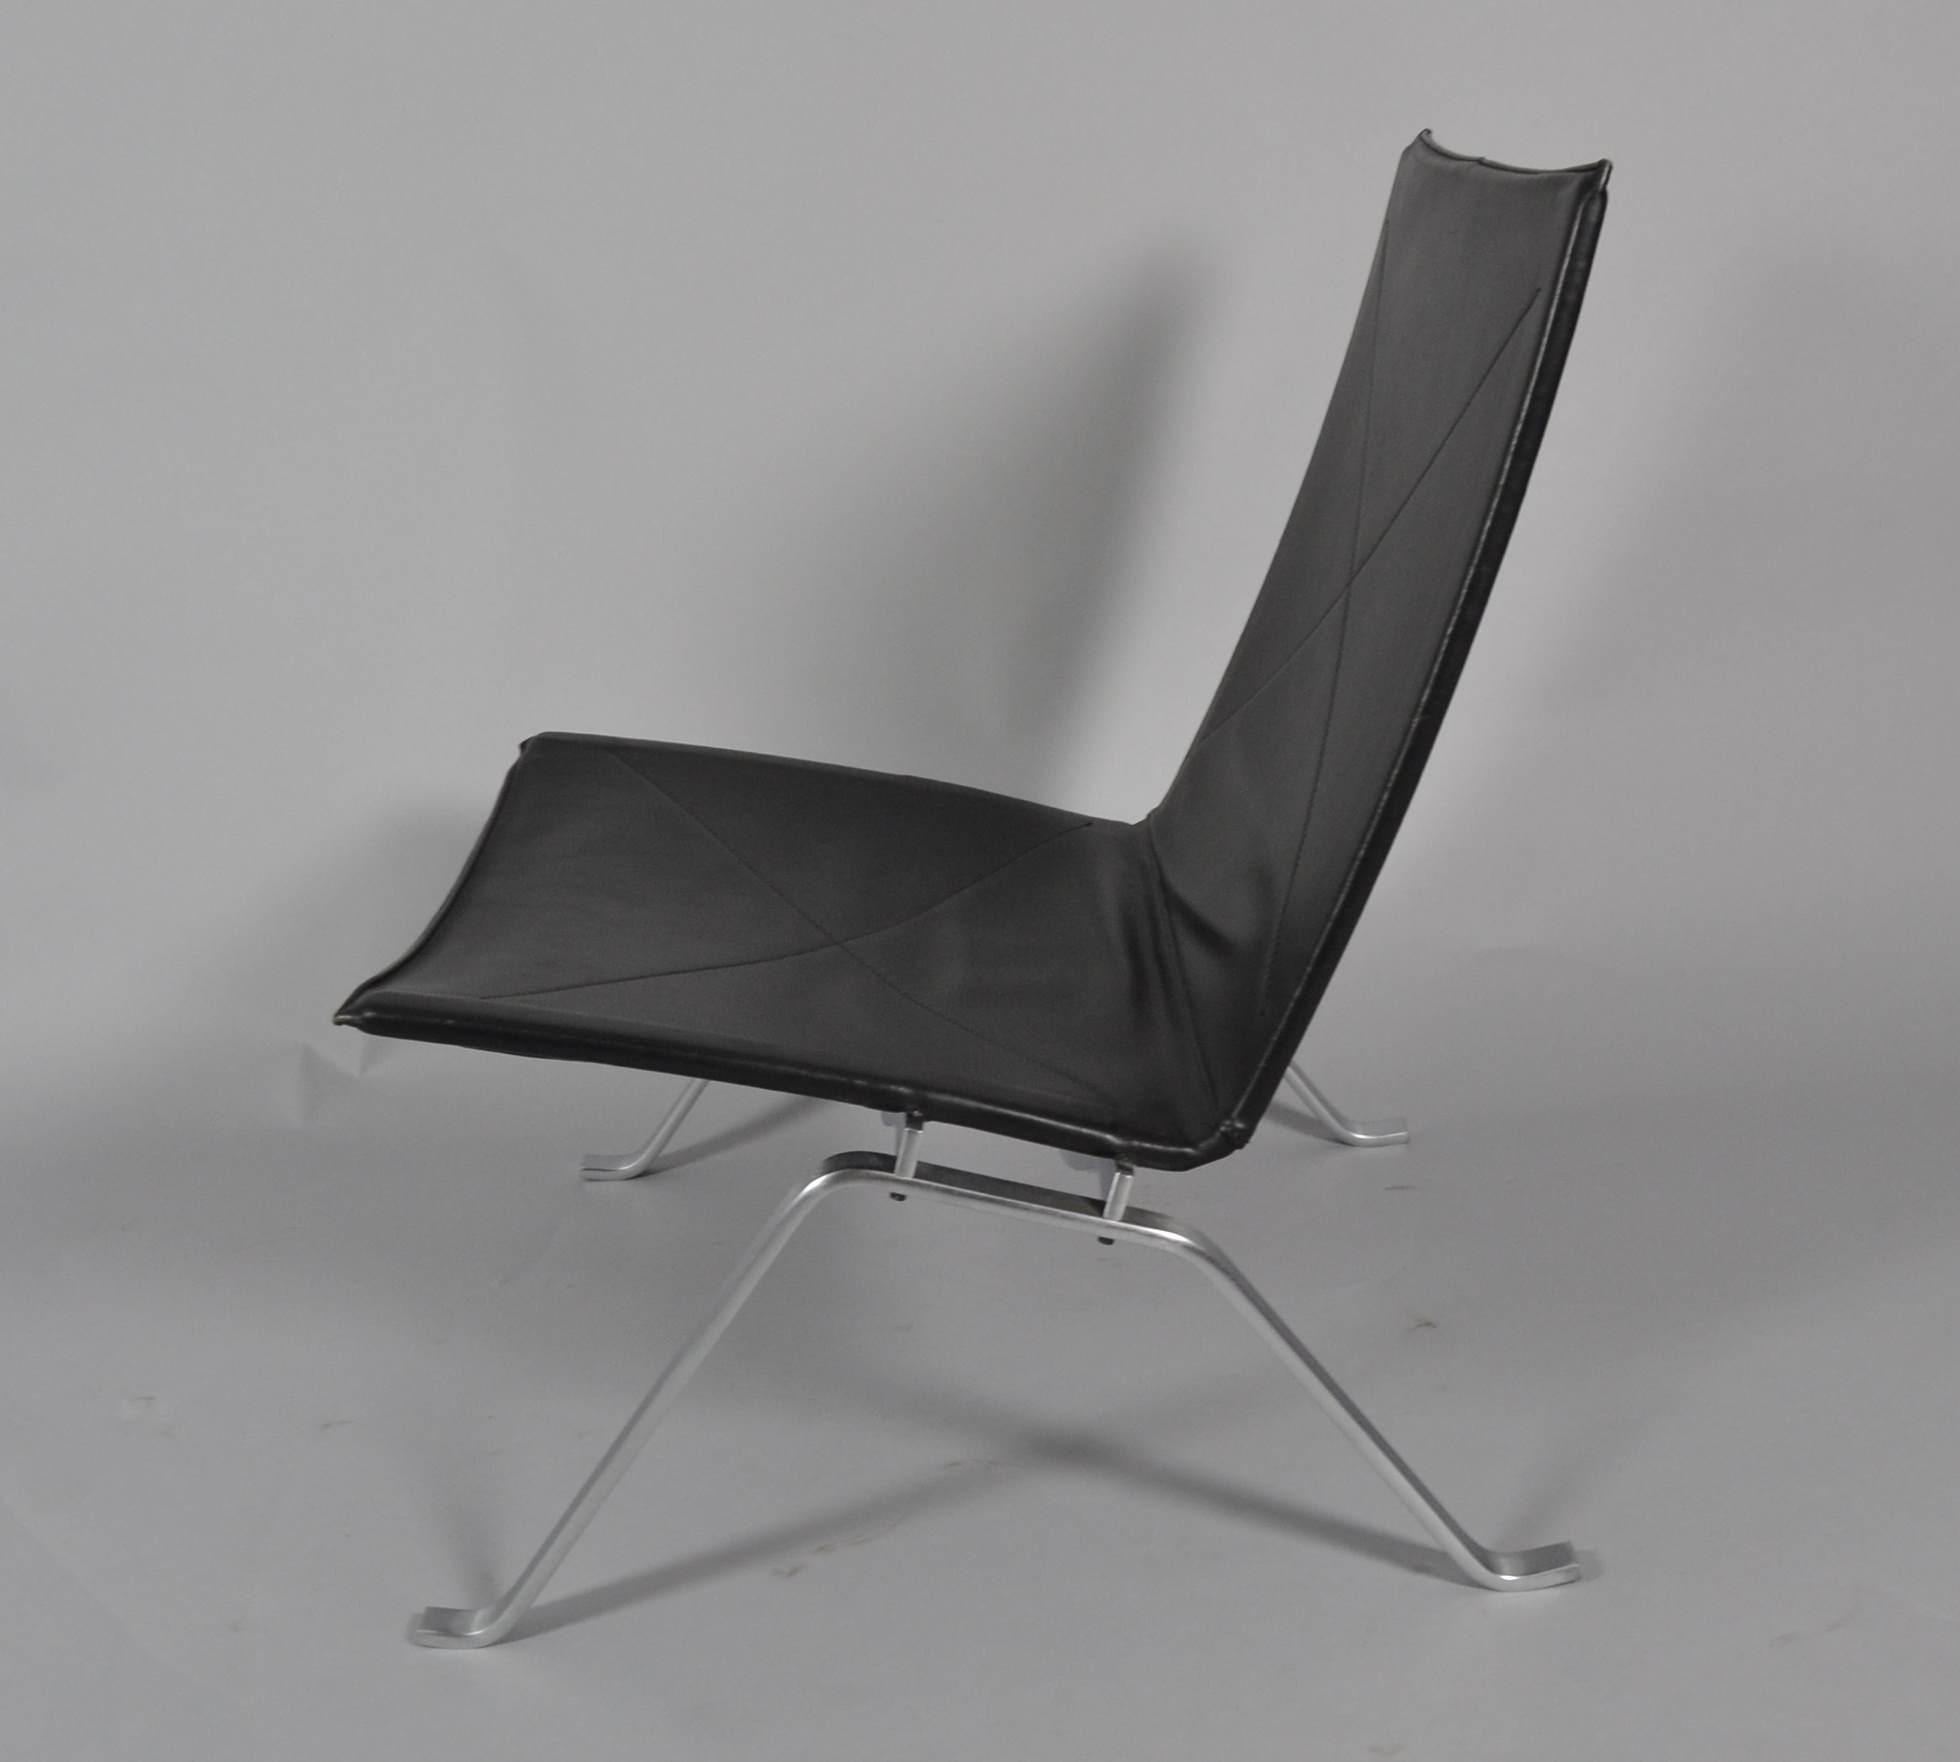 Slope Sessel Images For 469408 Poul Kjaerholm Pk 22 Sessel Auctionet